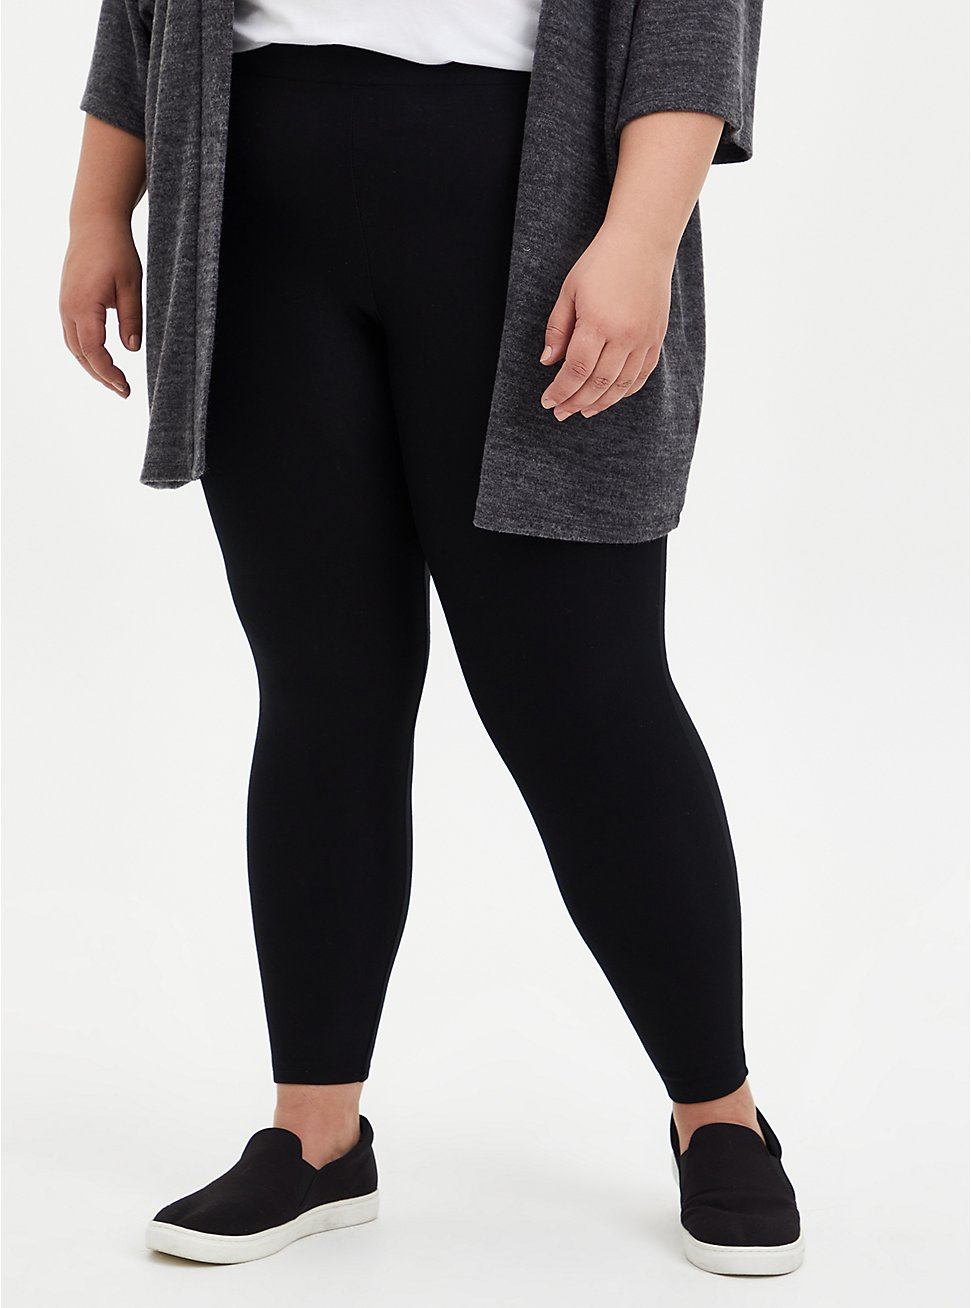 Platinum Leggings - Fleece Lined Black, BLACK, hi-res